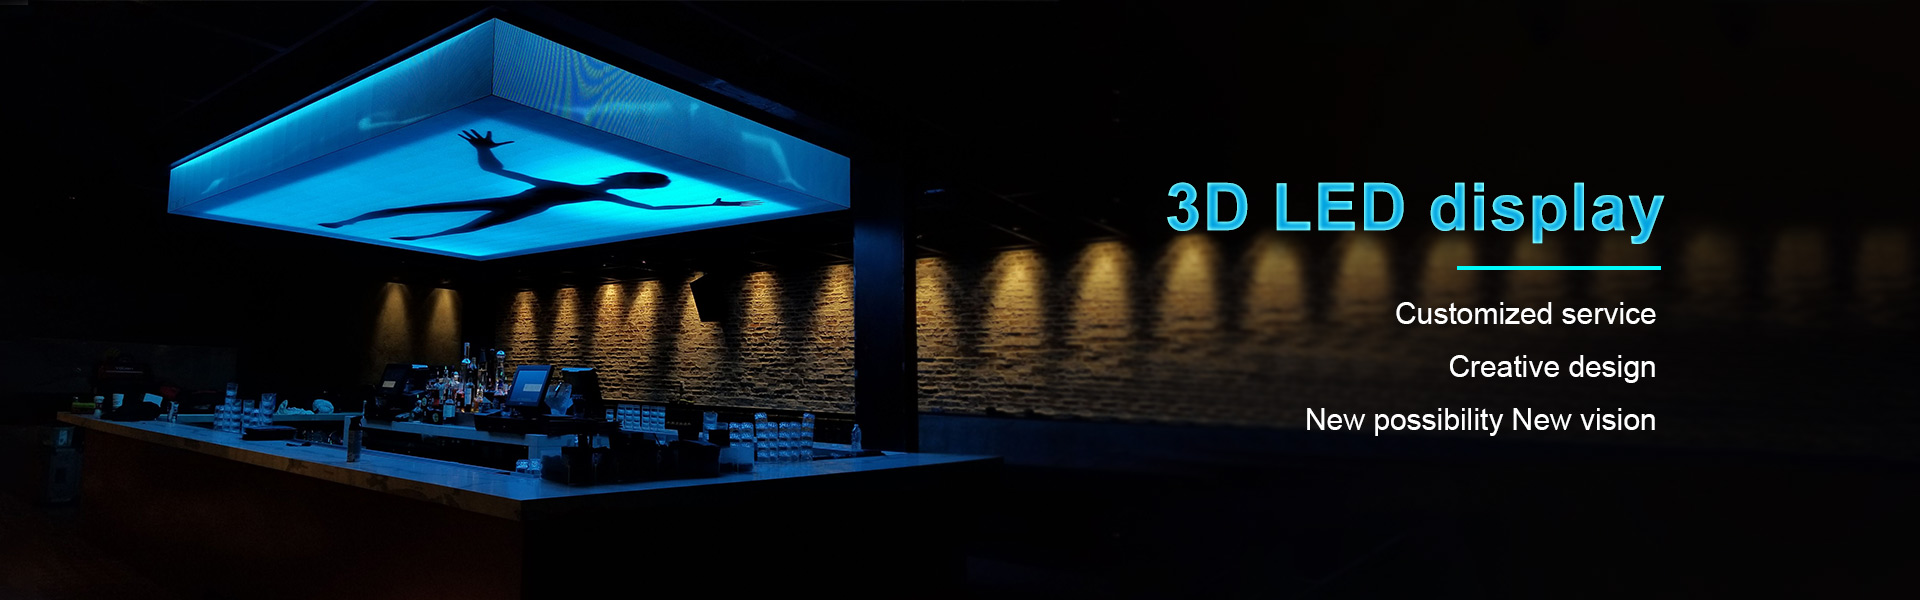 Sky 3D Led screen